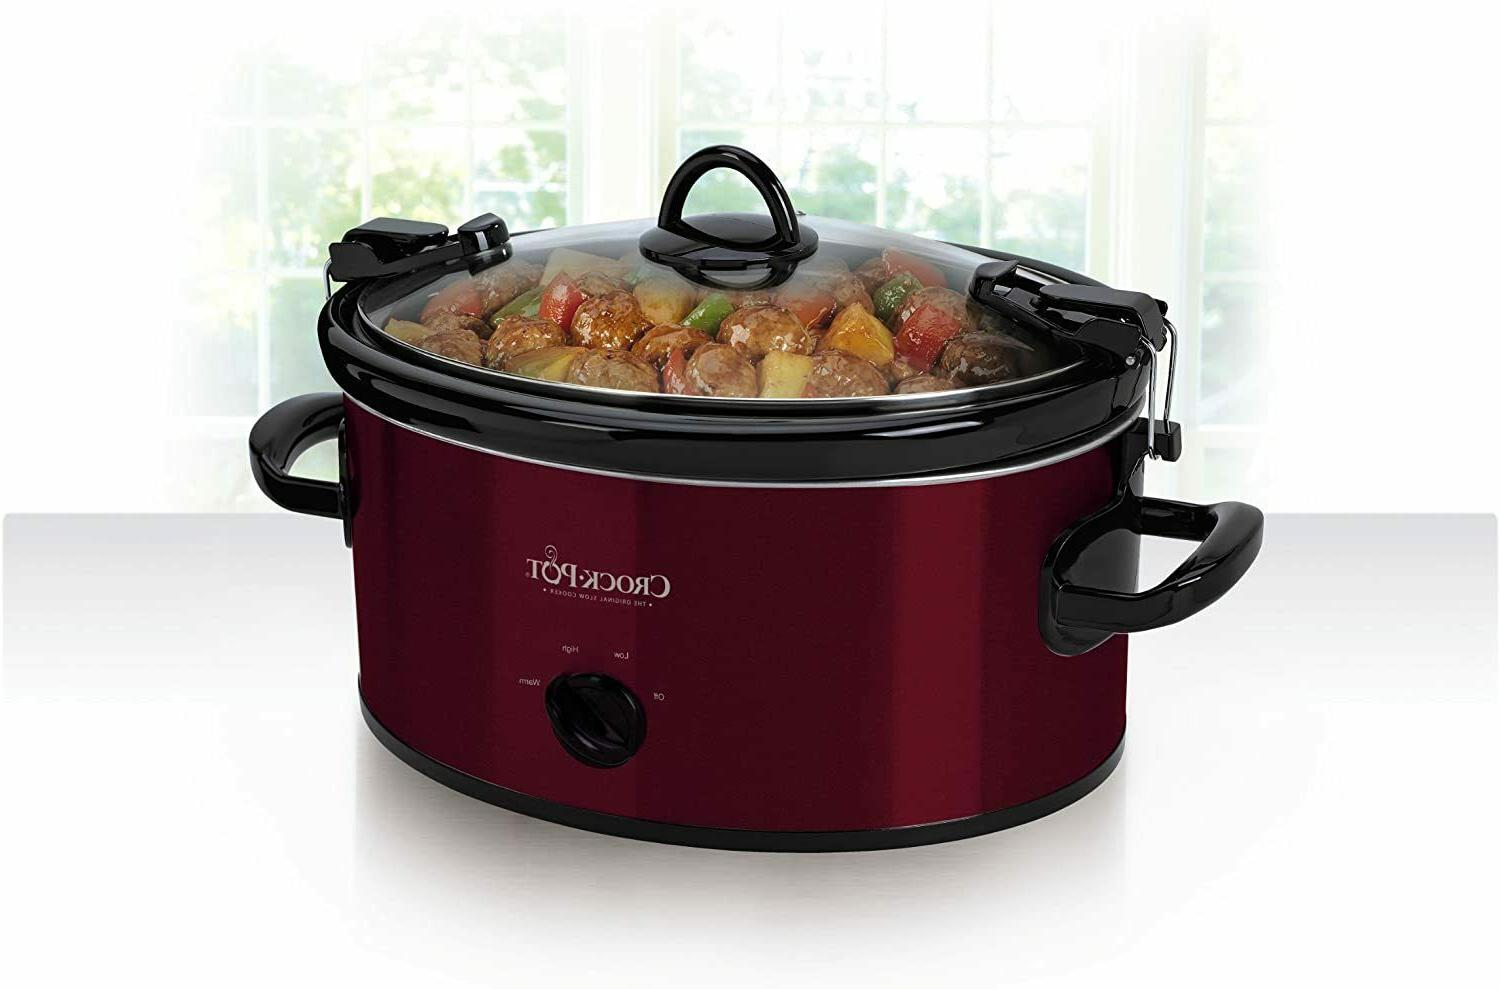 Crock-Pot Carry Oval Manual Slow Cooker Red SCCPVL600R